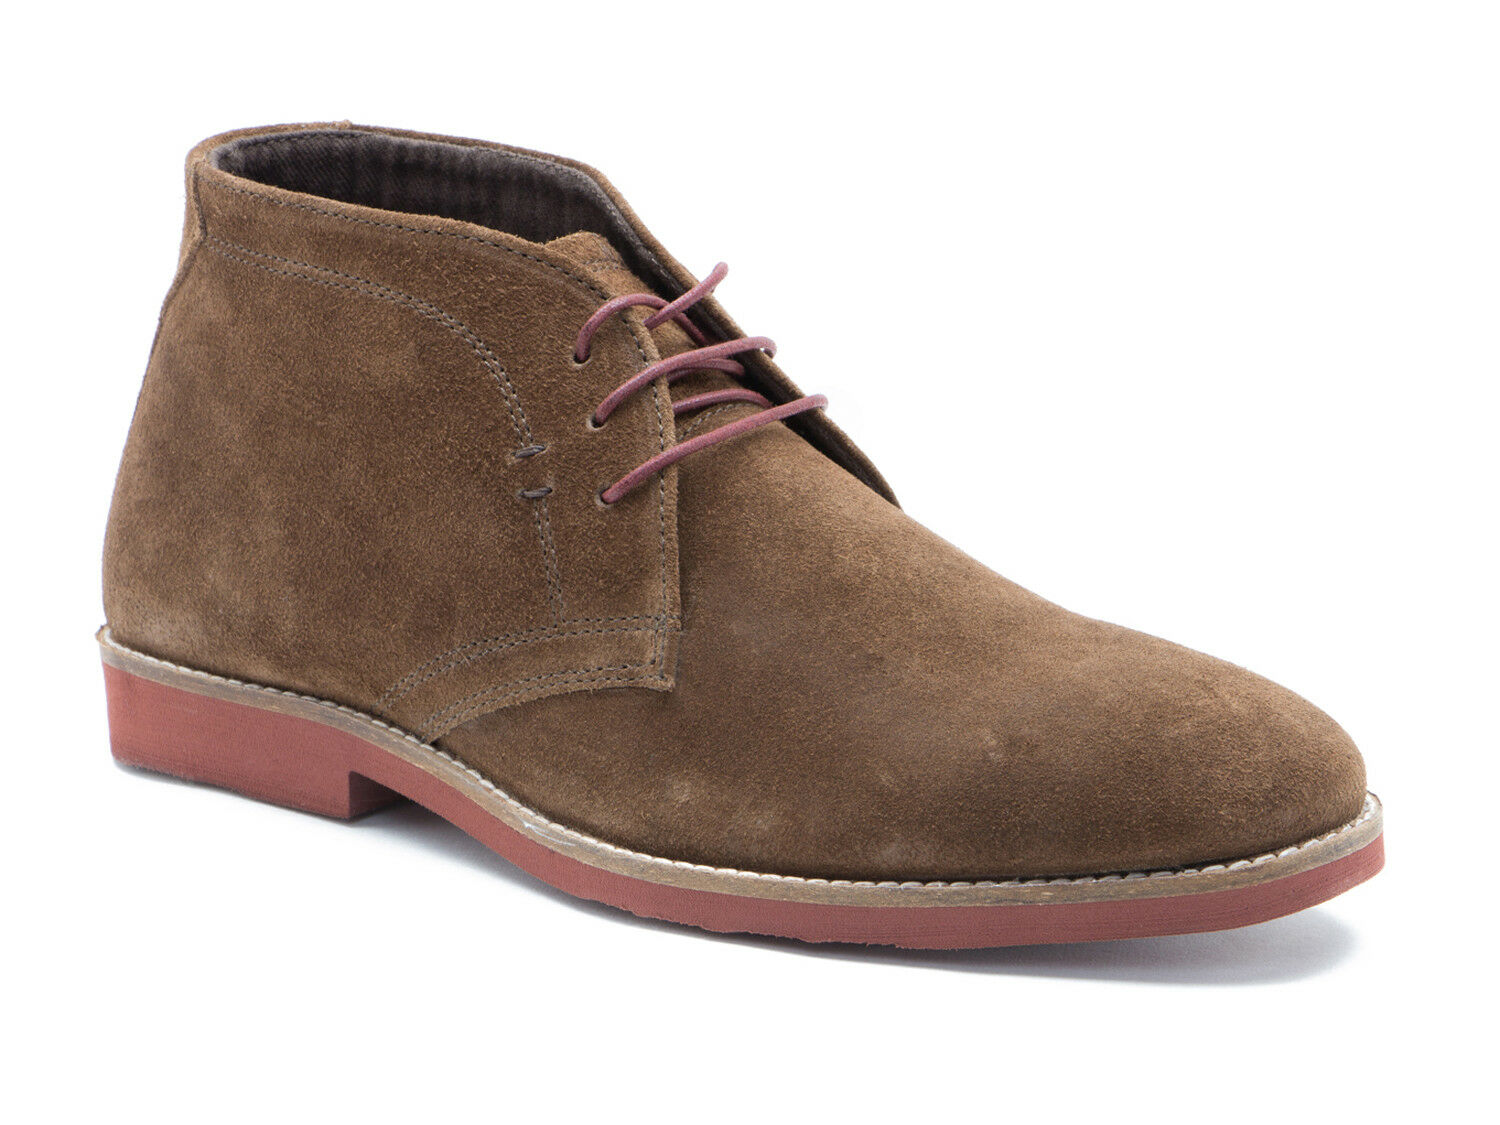 Red Tape Dorney Brown Suede Mens Casual Desert Boots Free UK P&P RRP